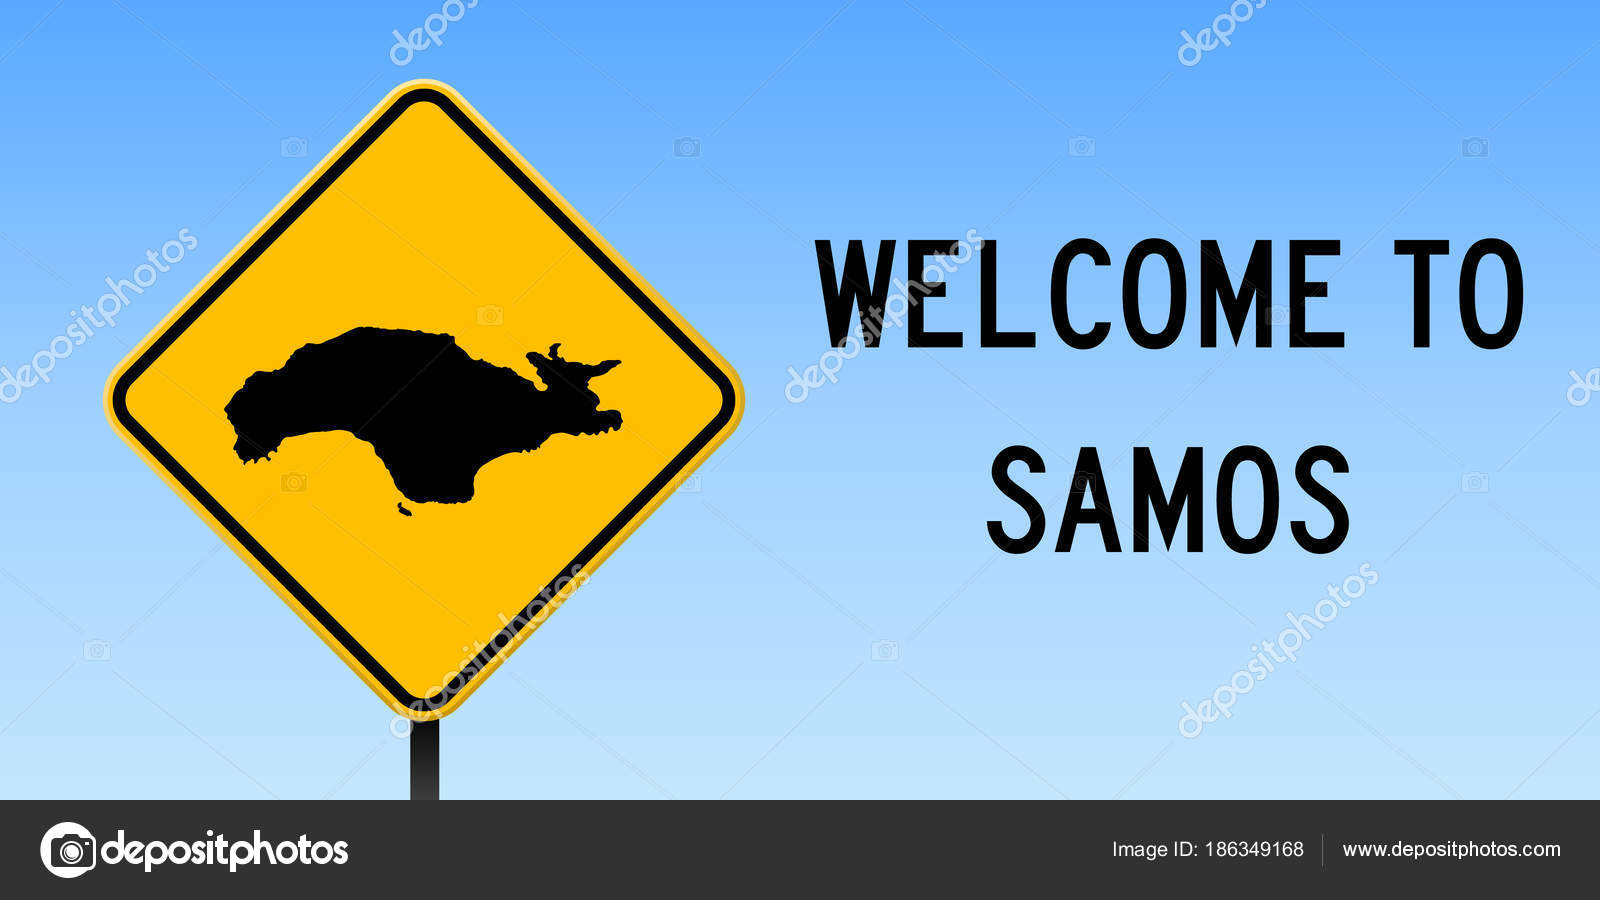 Samos map on road sign Wide poster with Samos island map on yellow